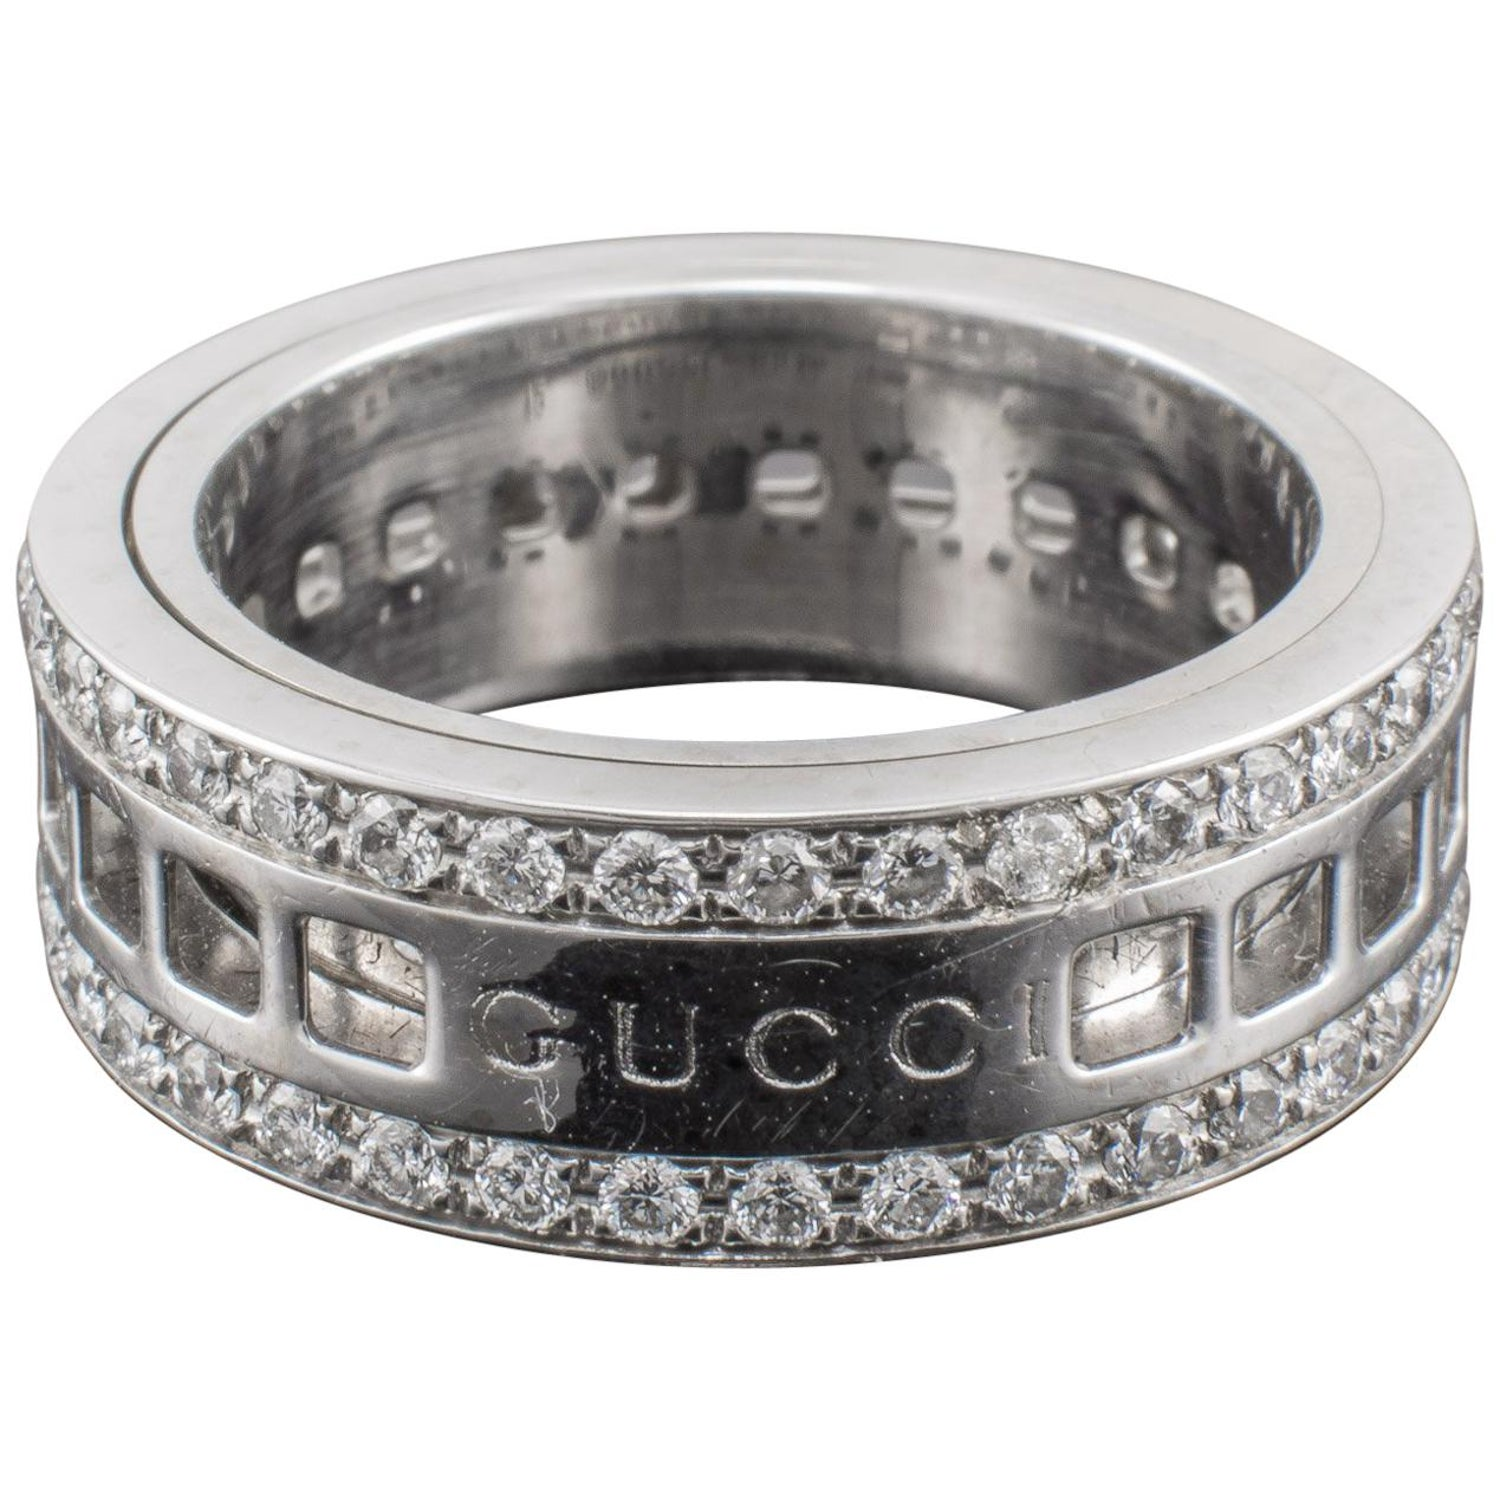 7b033c417 Gucci Diamond Ring Revolving Gold at 1stdibs